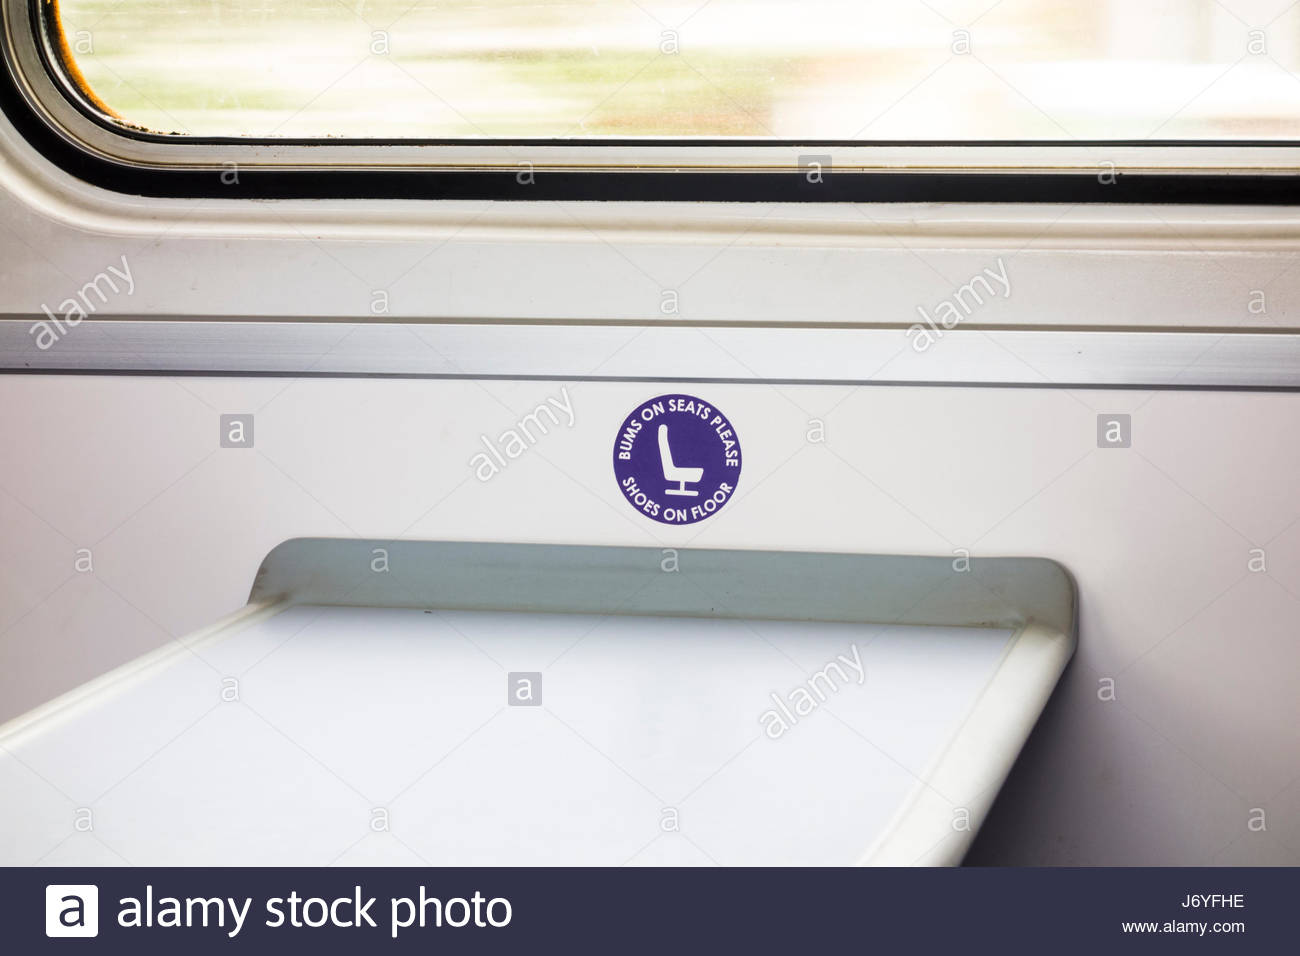 Sign on a Northern Rail train - Bums on Seats please, Shoes on Floor - Stock Image